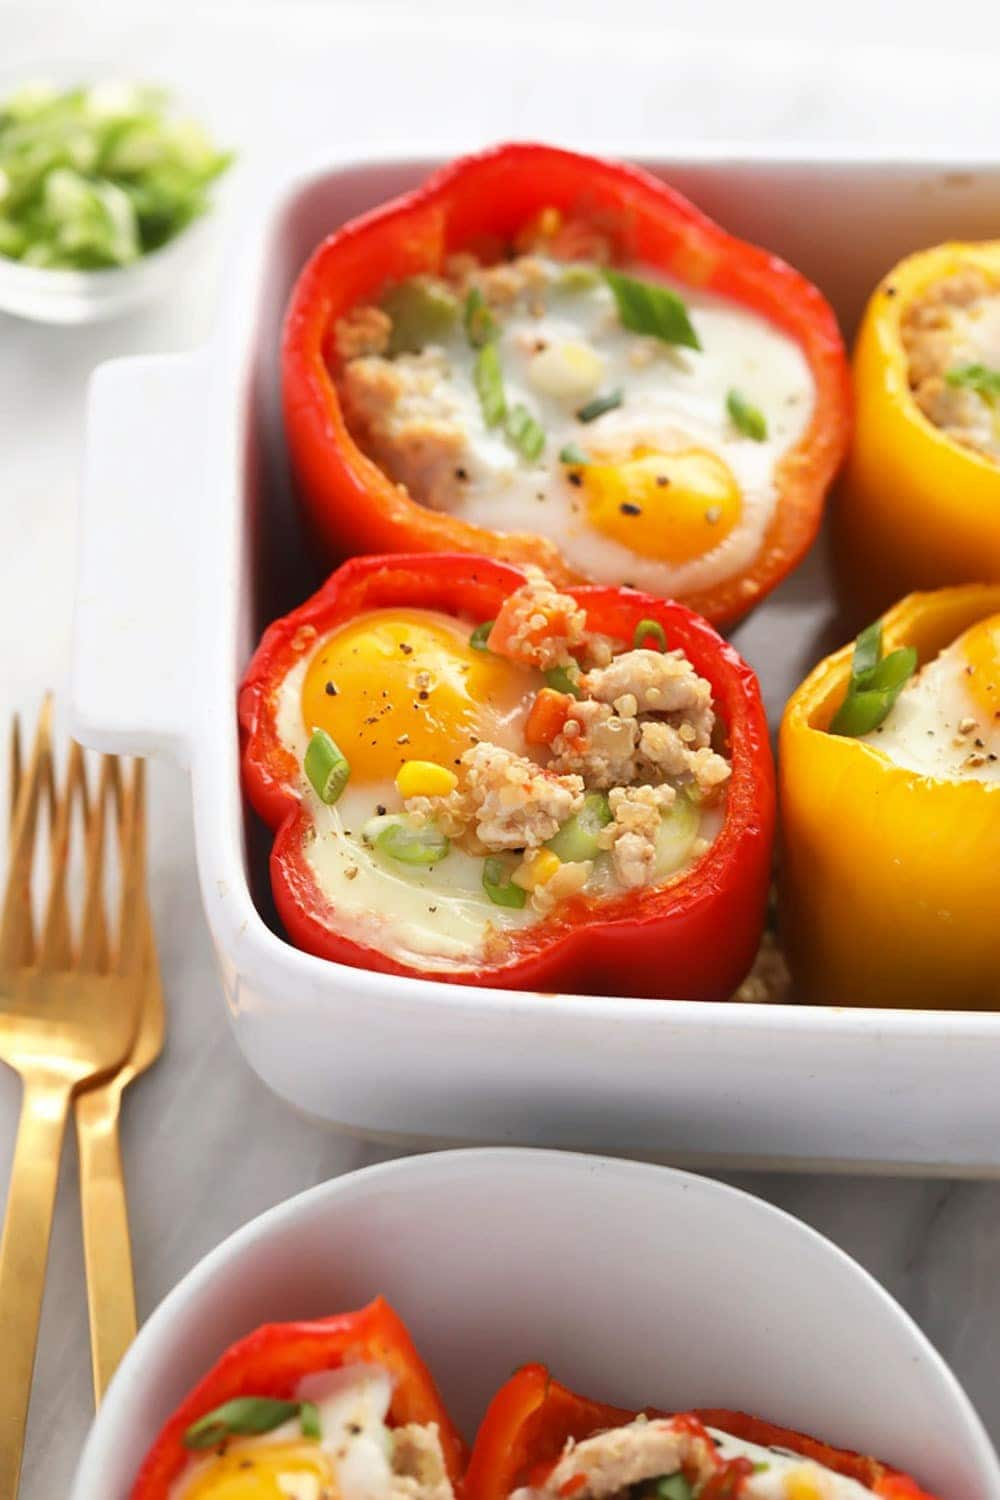 stuffed peppers with a baked egg